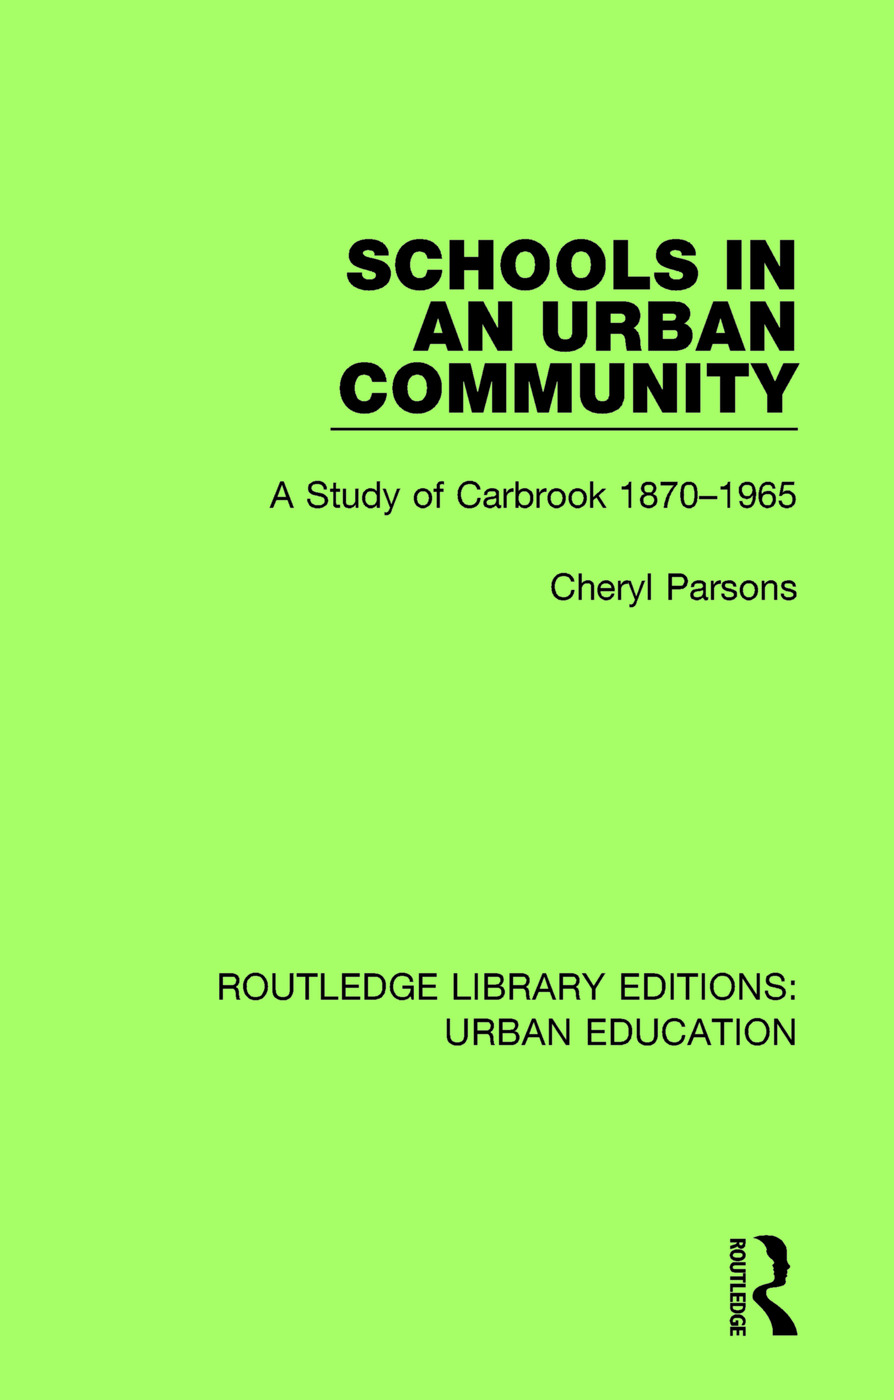 Schools in an Urban Community: A Study of Carbrook 1870-1965 book cover